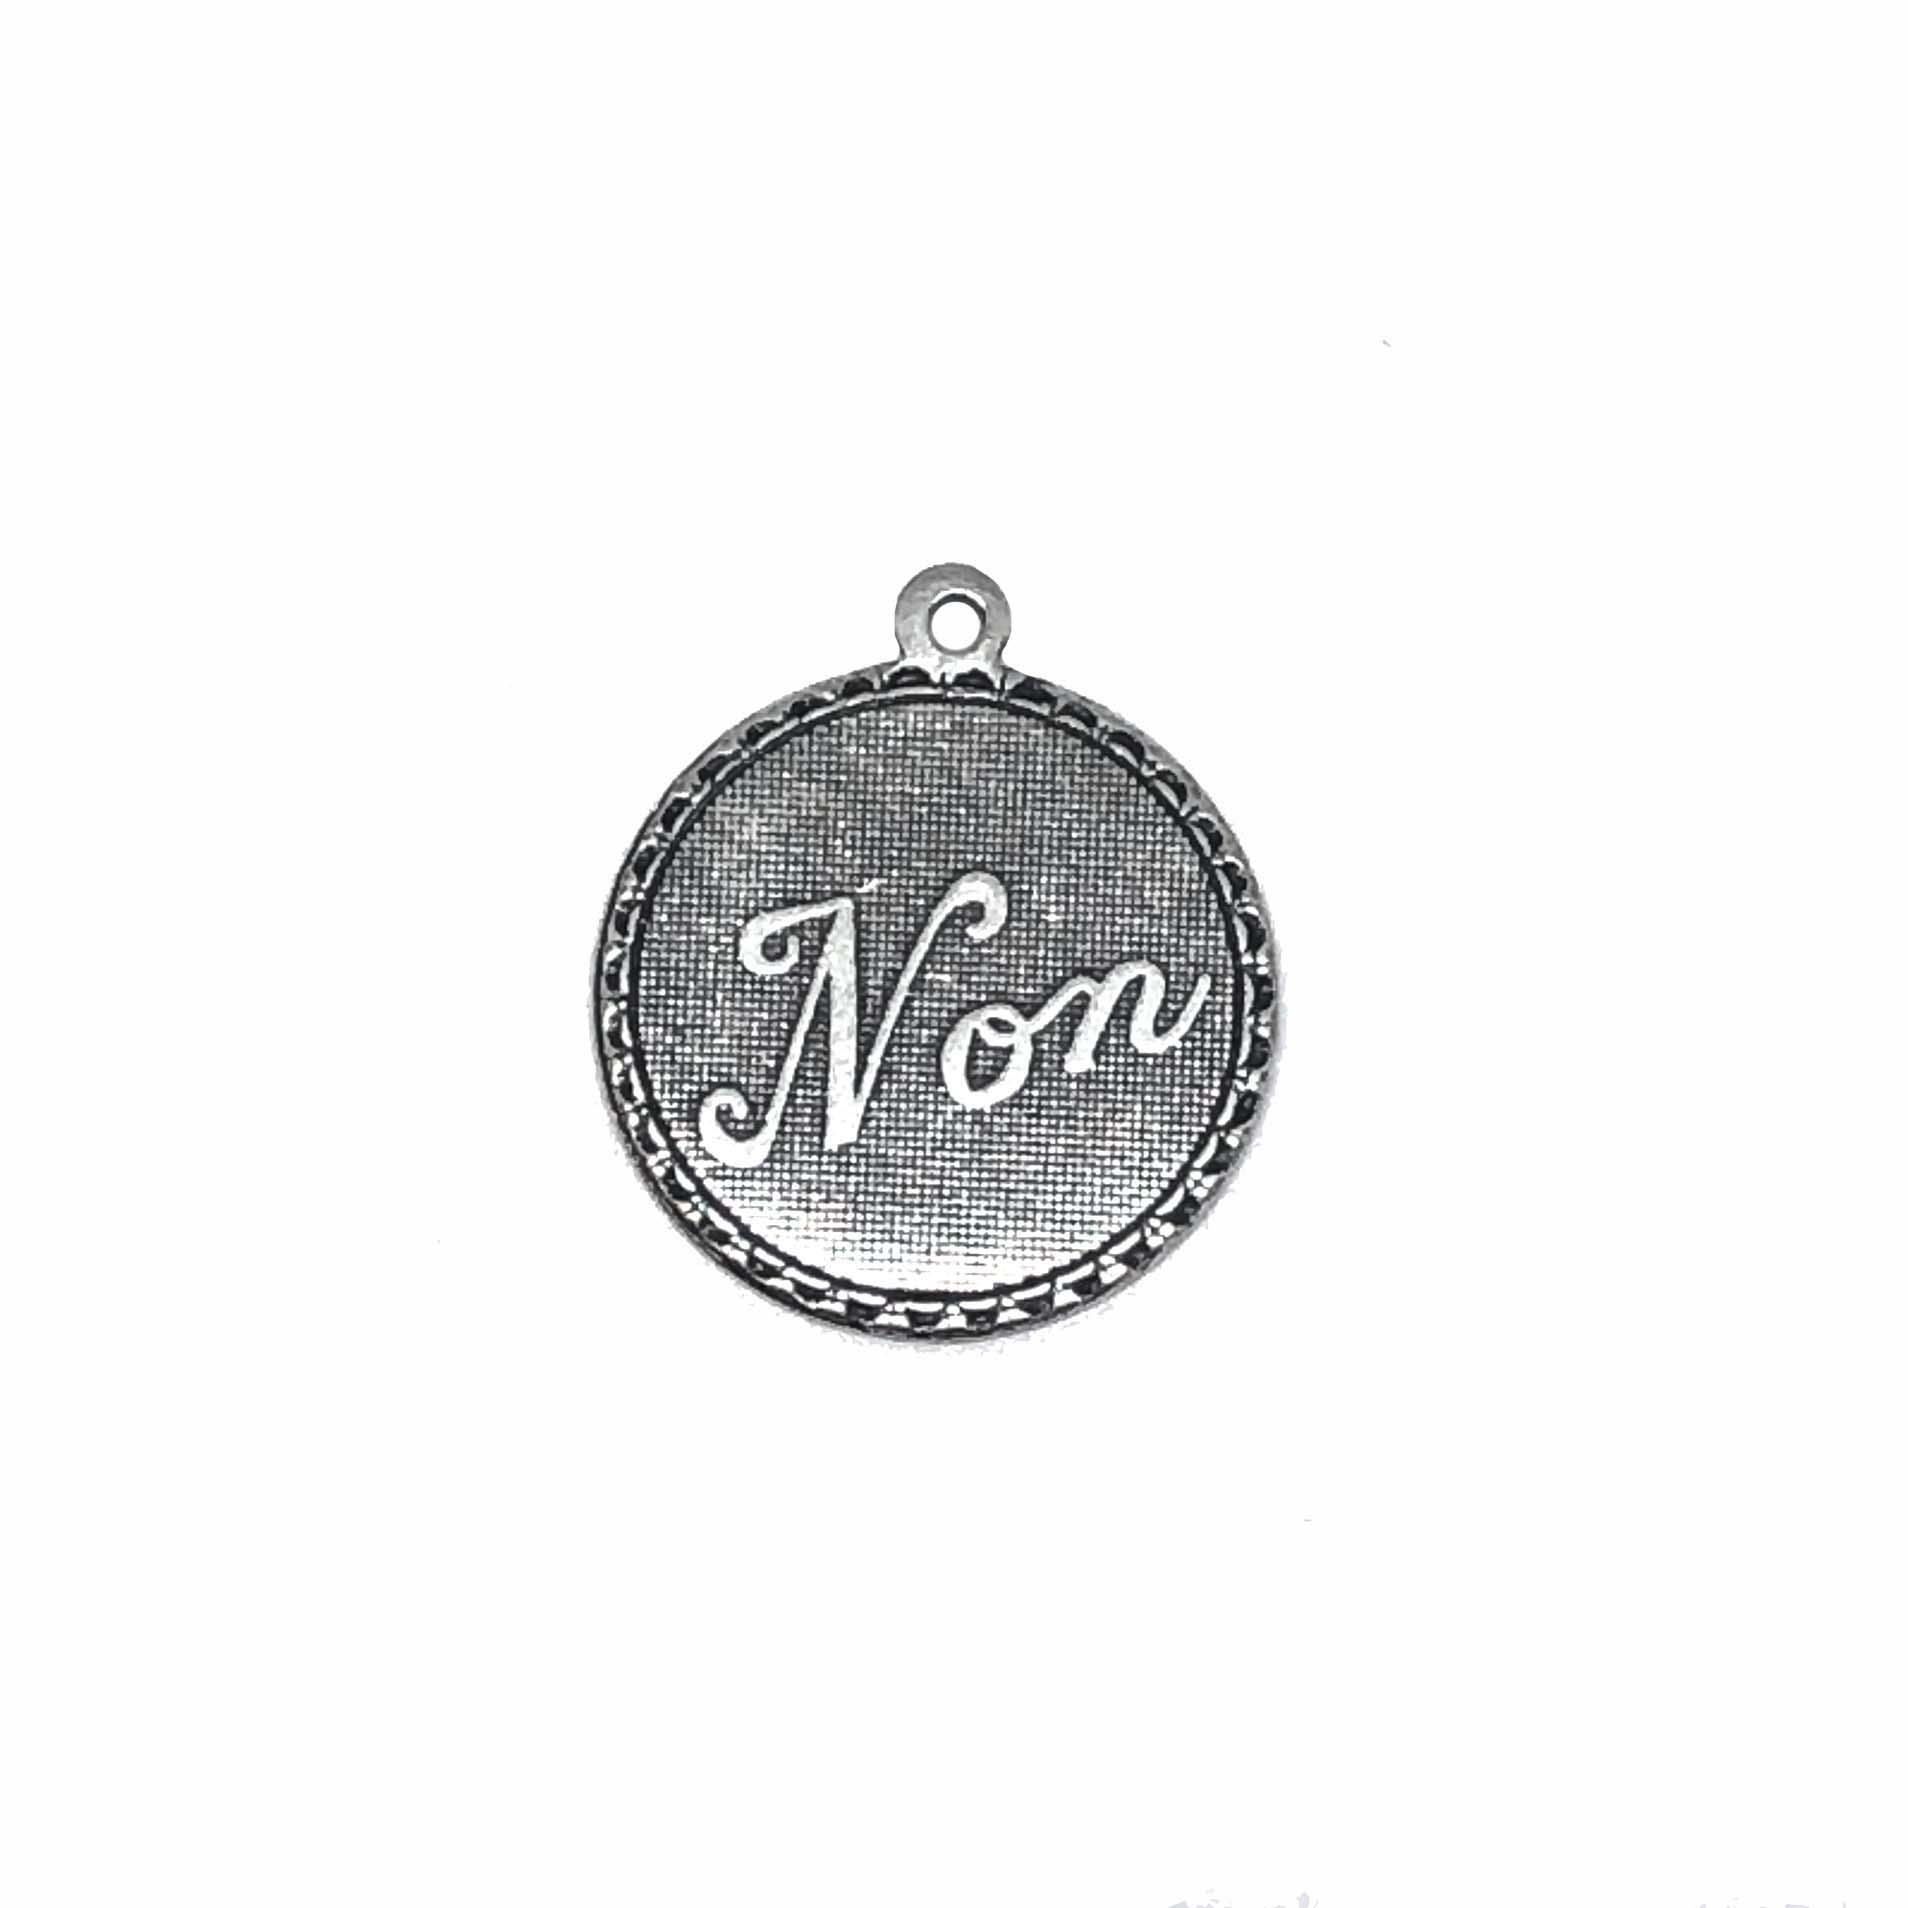 French Non Charms, No, Brass Stamping, Pendant, Silverware Silverplate, 19mm